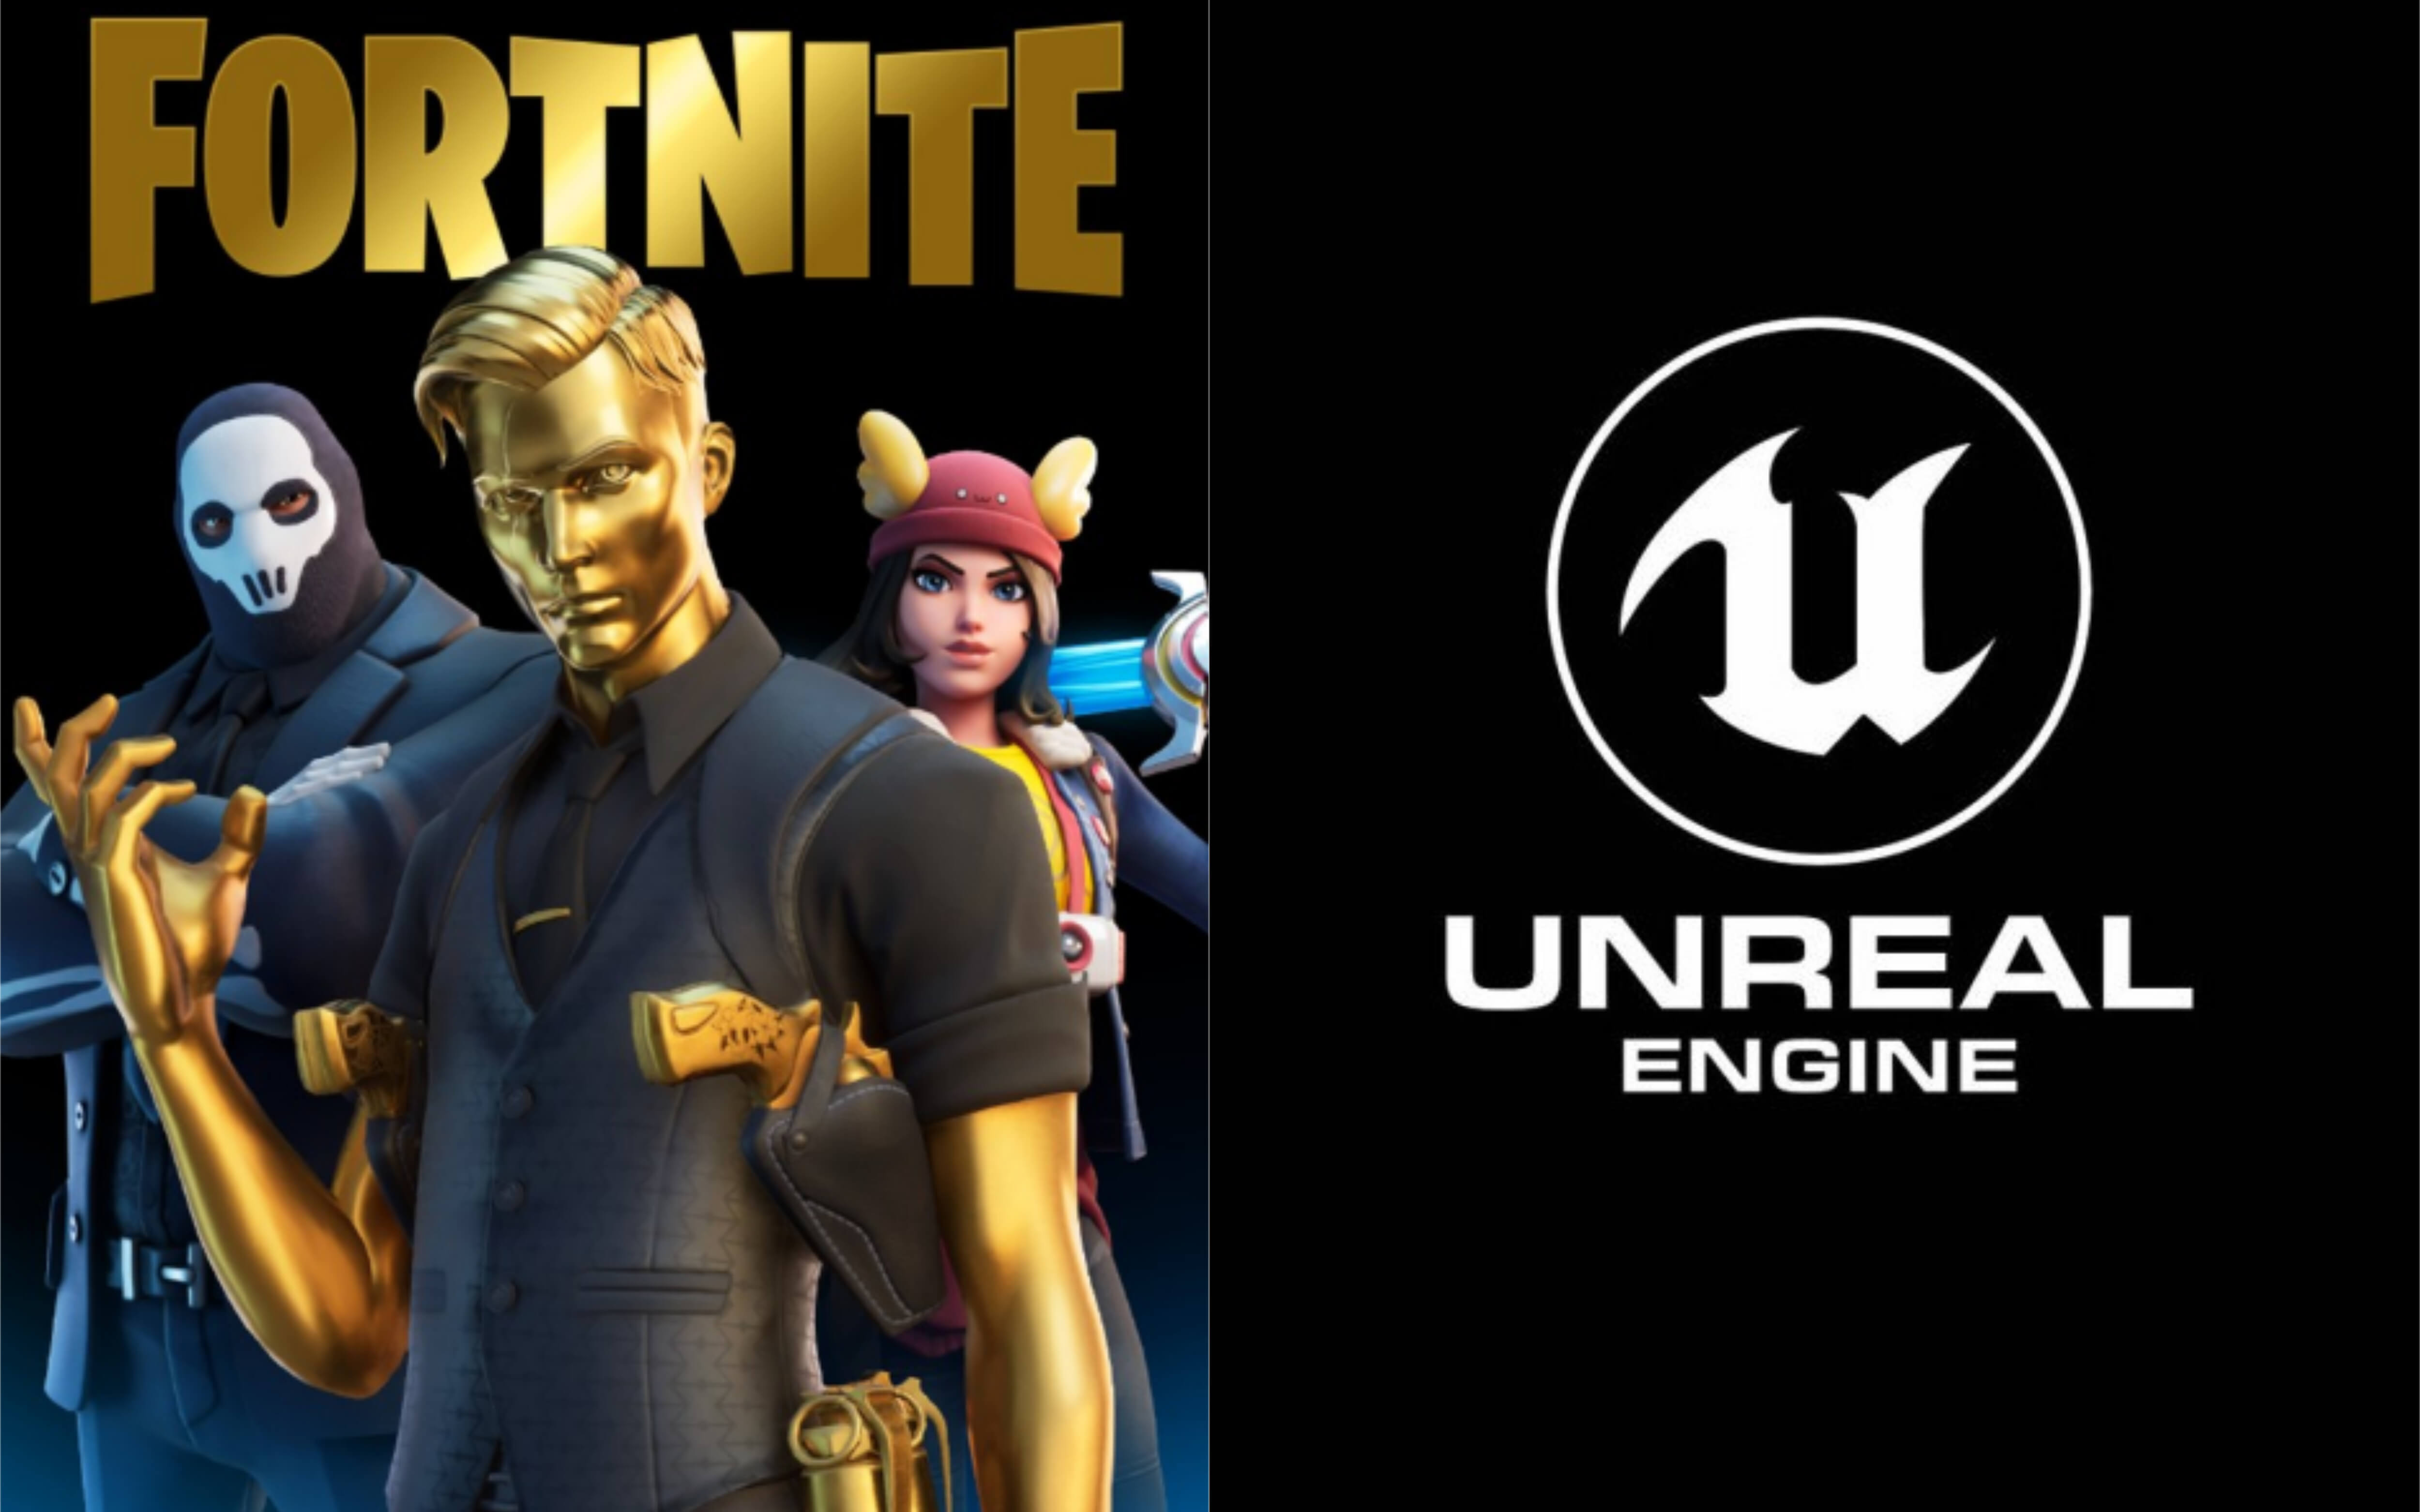 Fortnite will be moving to Unreal Engine 5 in 2021